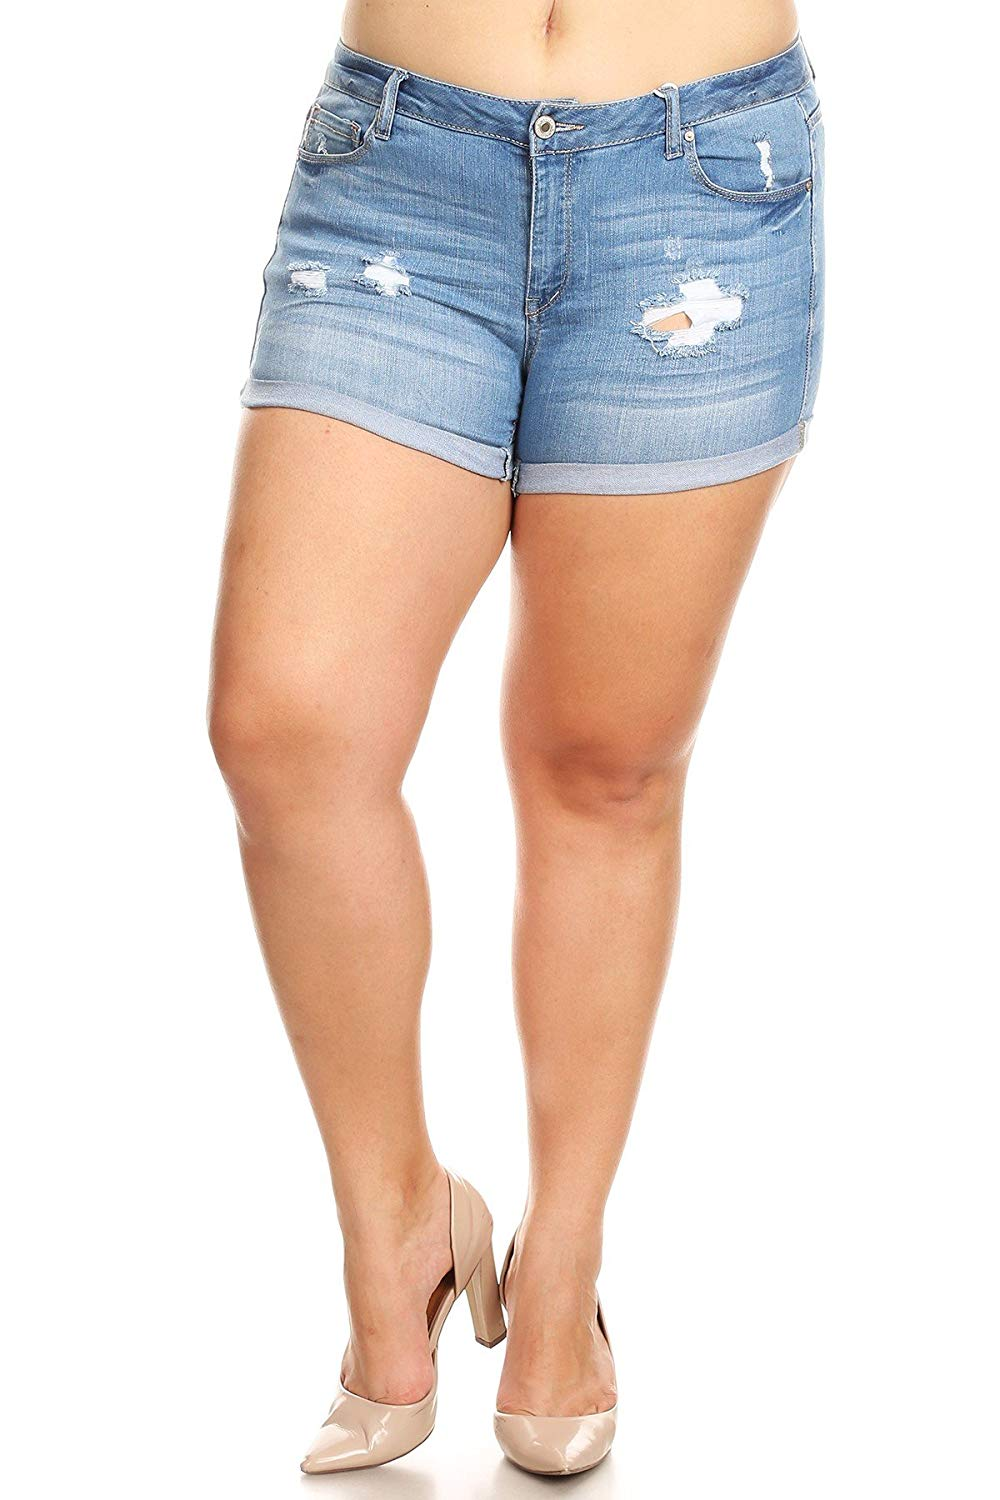 Sexy Plus Size Denim Jean Shorts with Rolled Hems